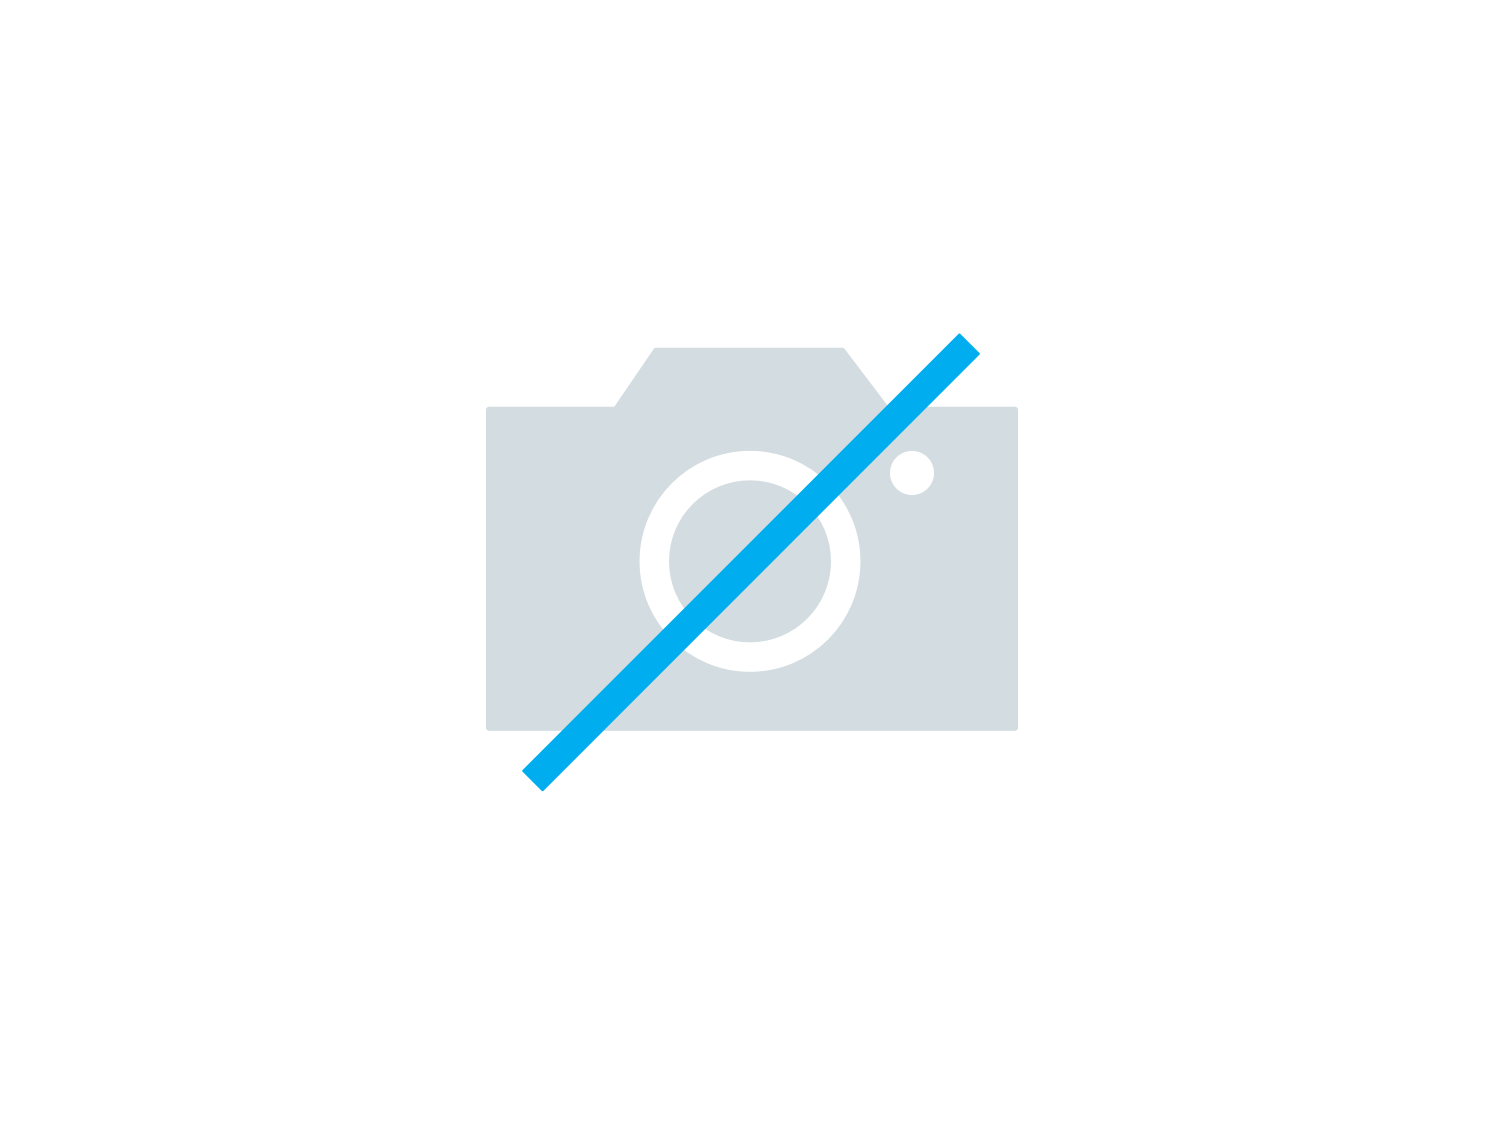 Badmat Adagio 60x100cm powder blue